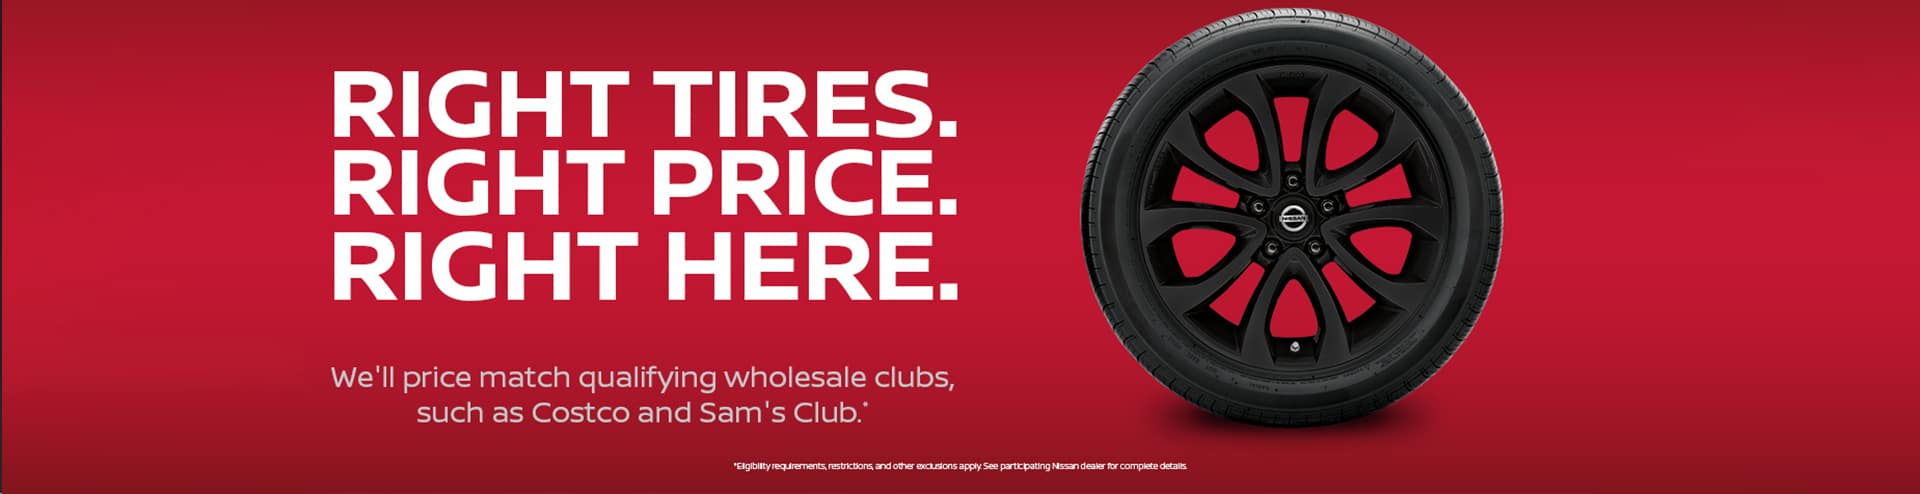 Right Tires. Right Price. Right Here.